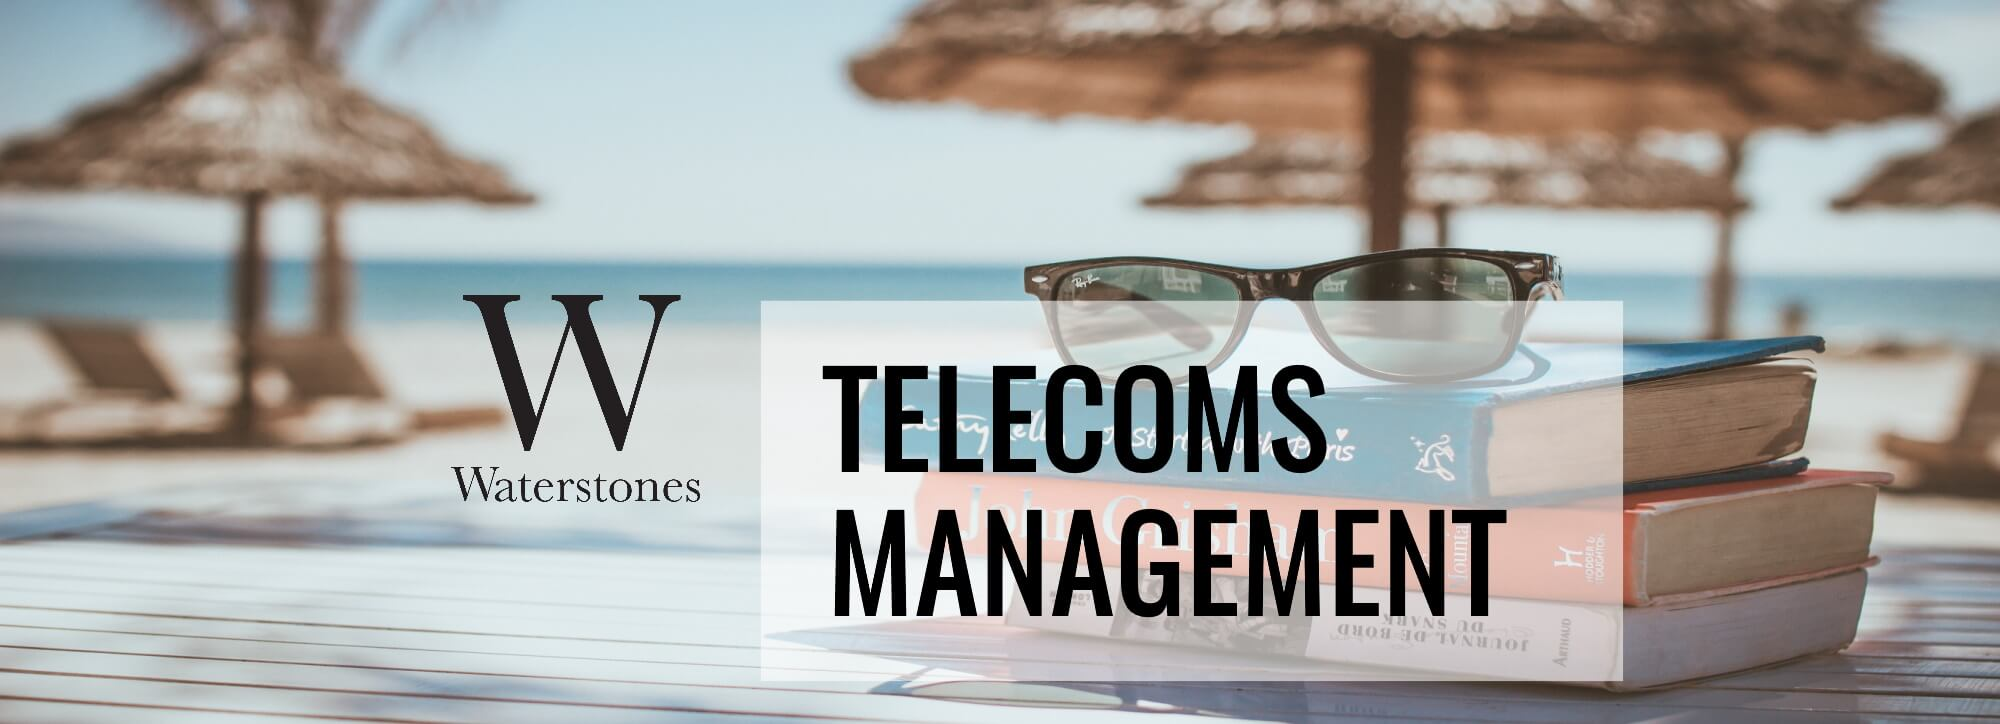 Telecoms Management - Fixed Line Telecom Services Case Study - Waterstones